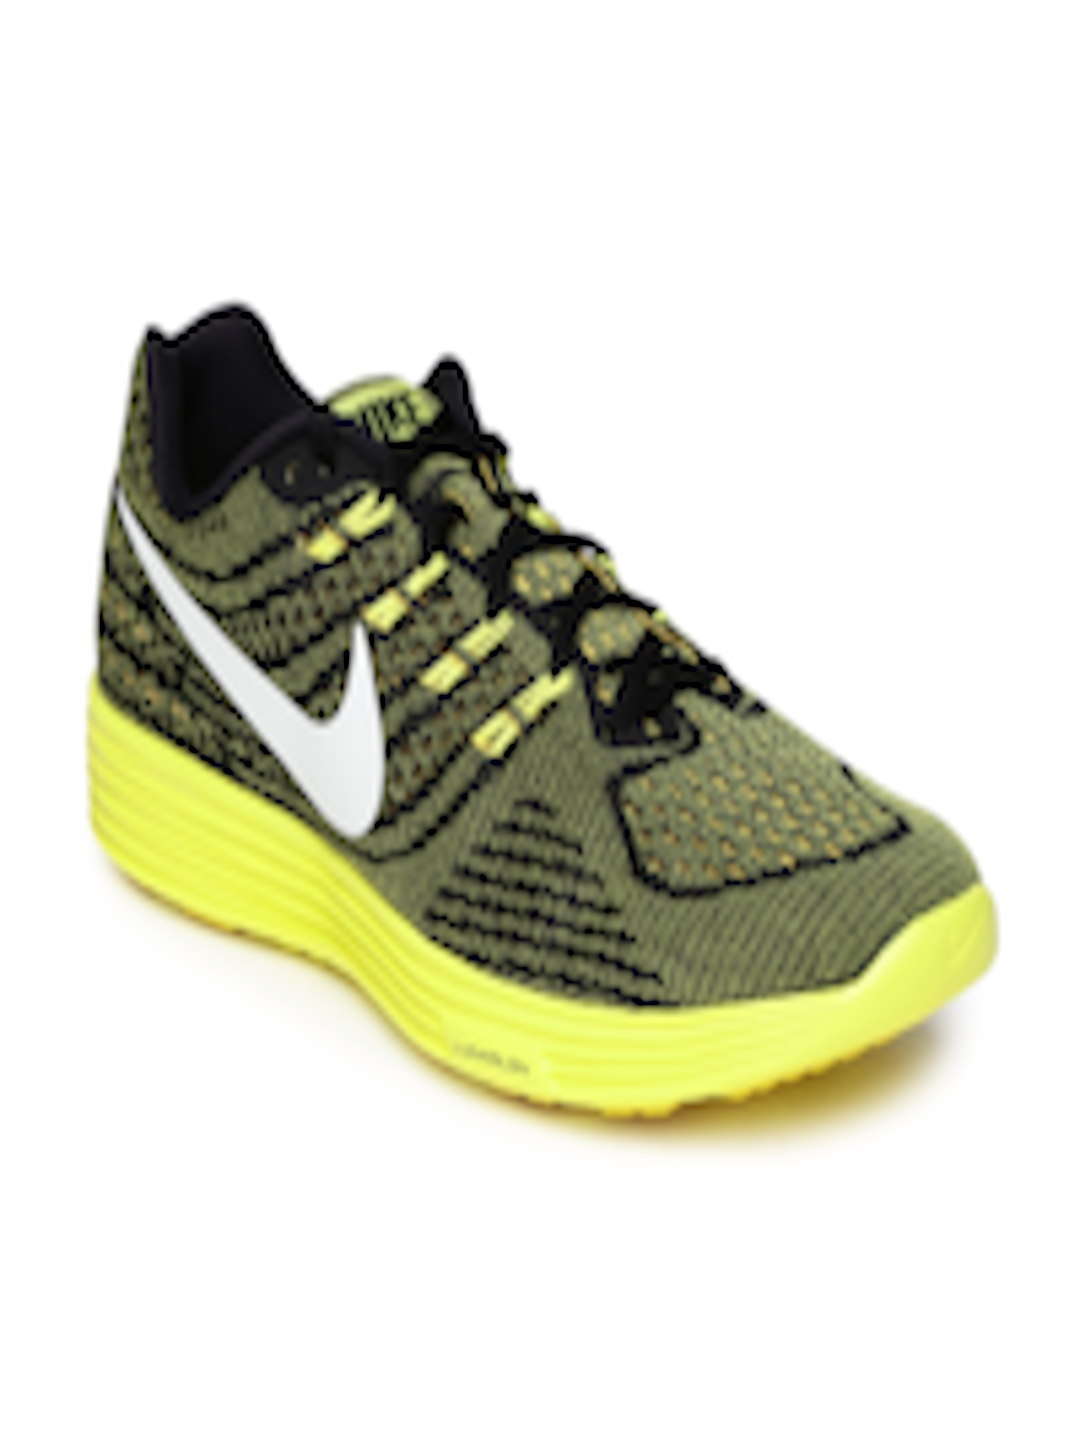 uk availability 5cbae 141cd Buy Nike Men Black & Yellow LunarTempo 2 Running Shoes - - Footwear for Men